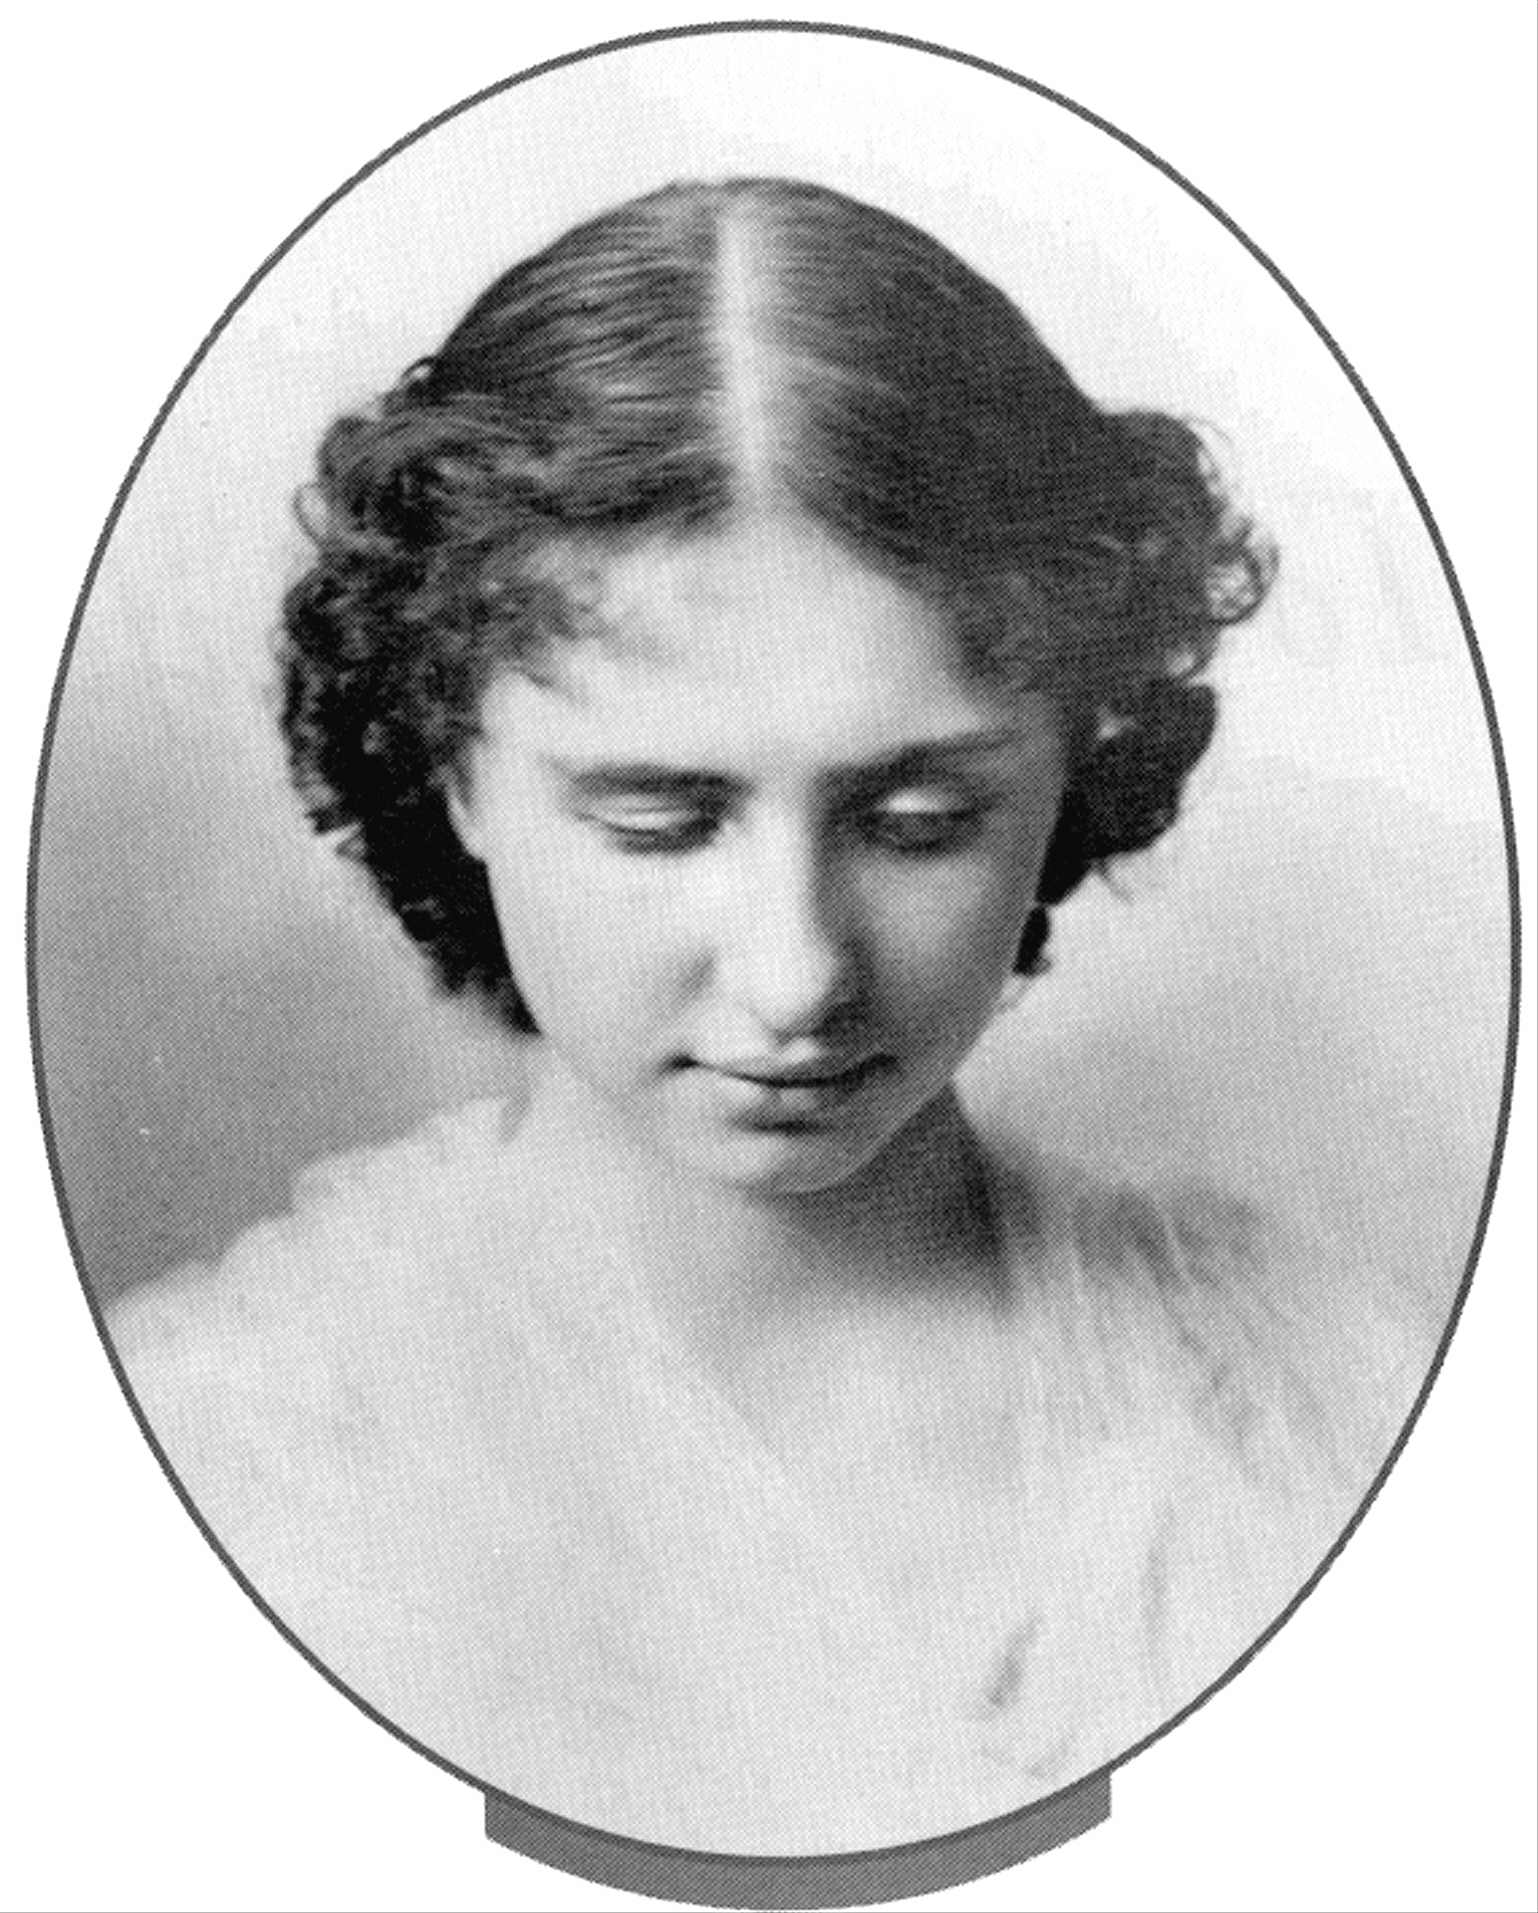 index of miracleworker parent directory acircmiddot 1 helen keller looking down young pic jpg